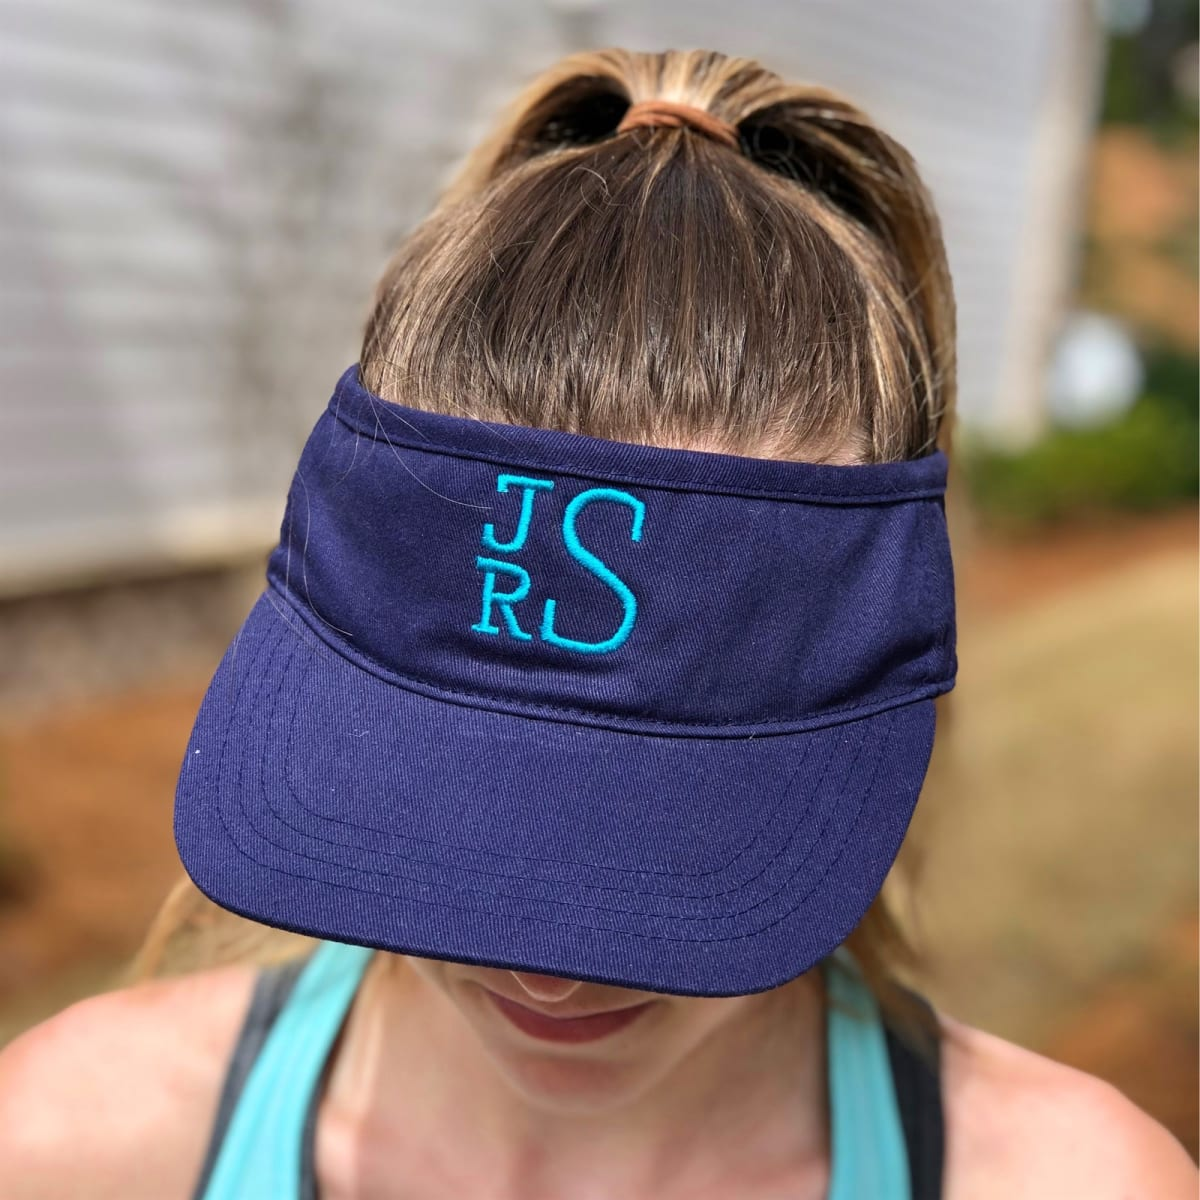 Personalized Colorful Visors Jane